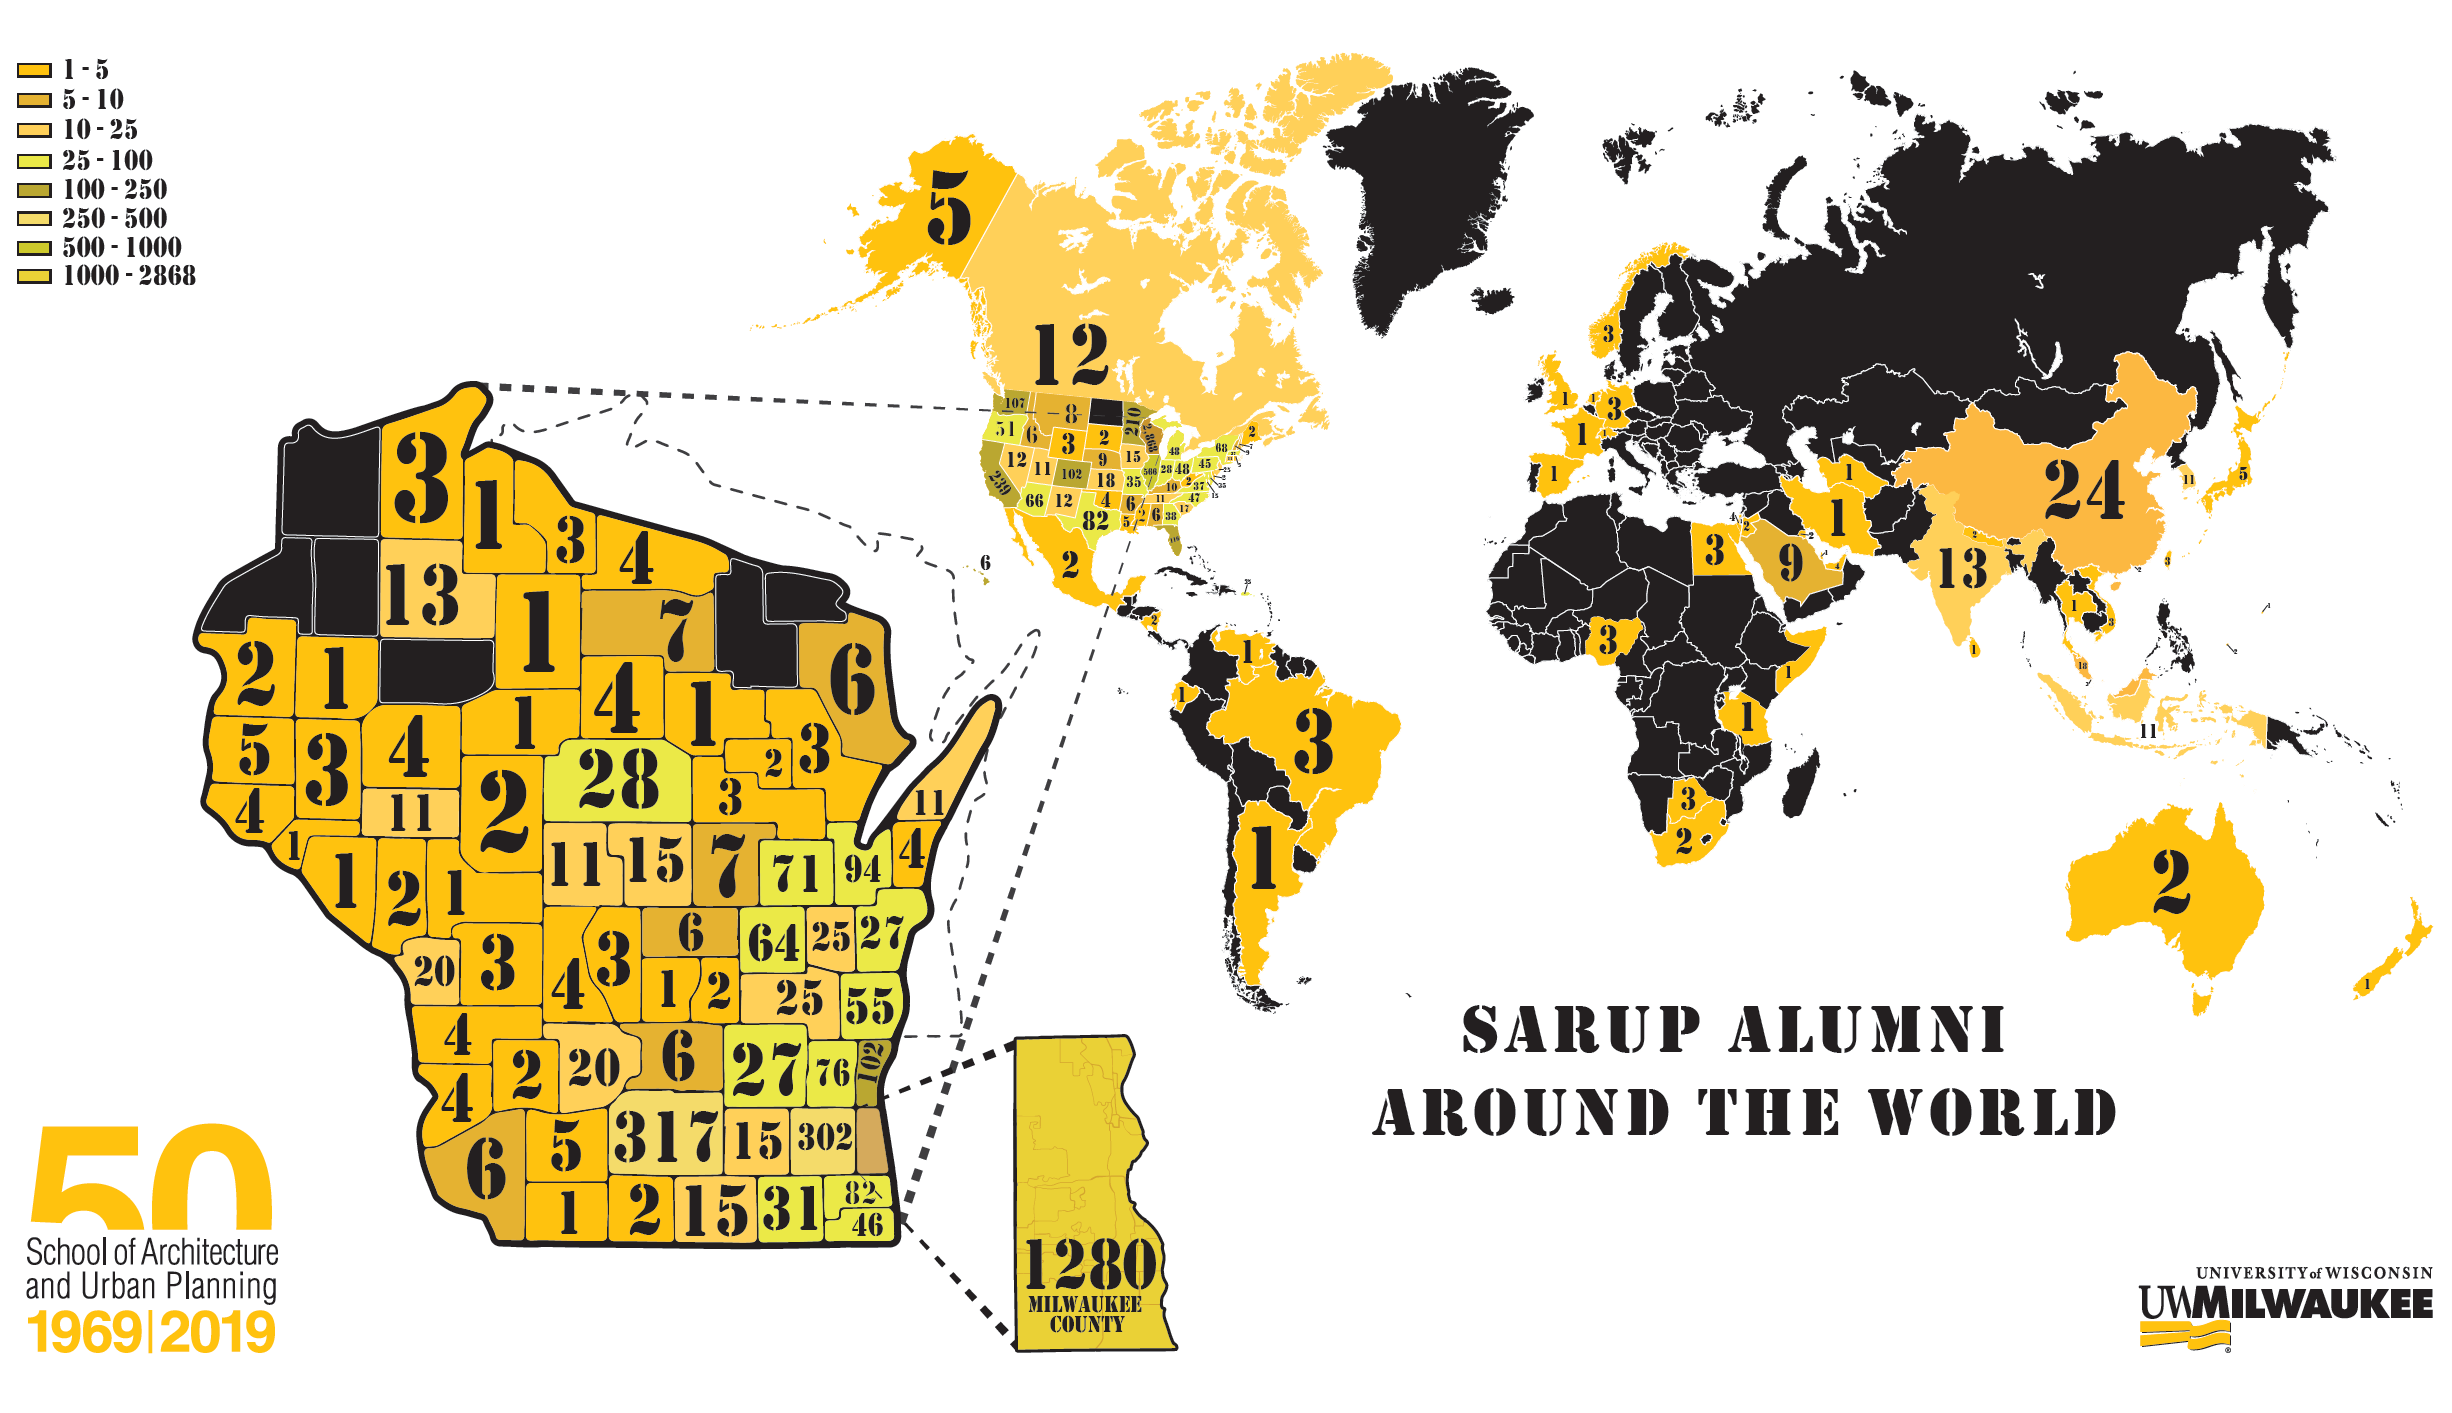 SARUP Alumni Around the World